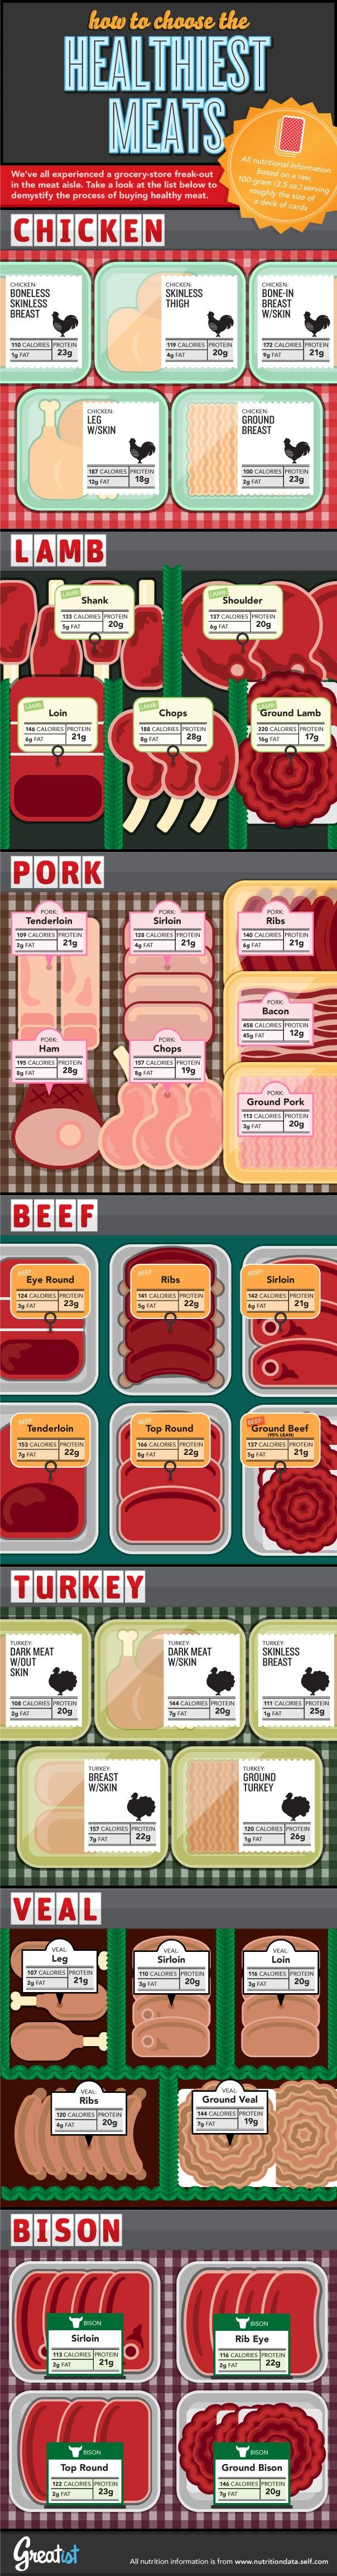 How to Choose the Healthiest Meats #infographic